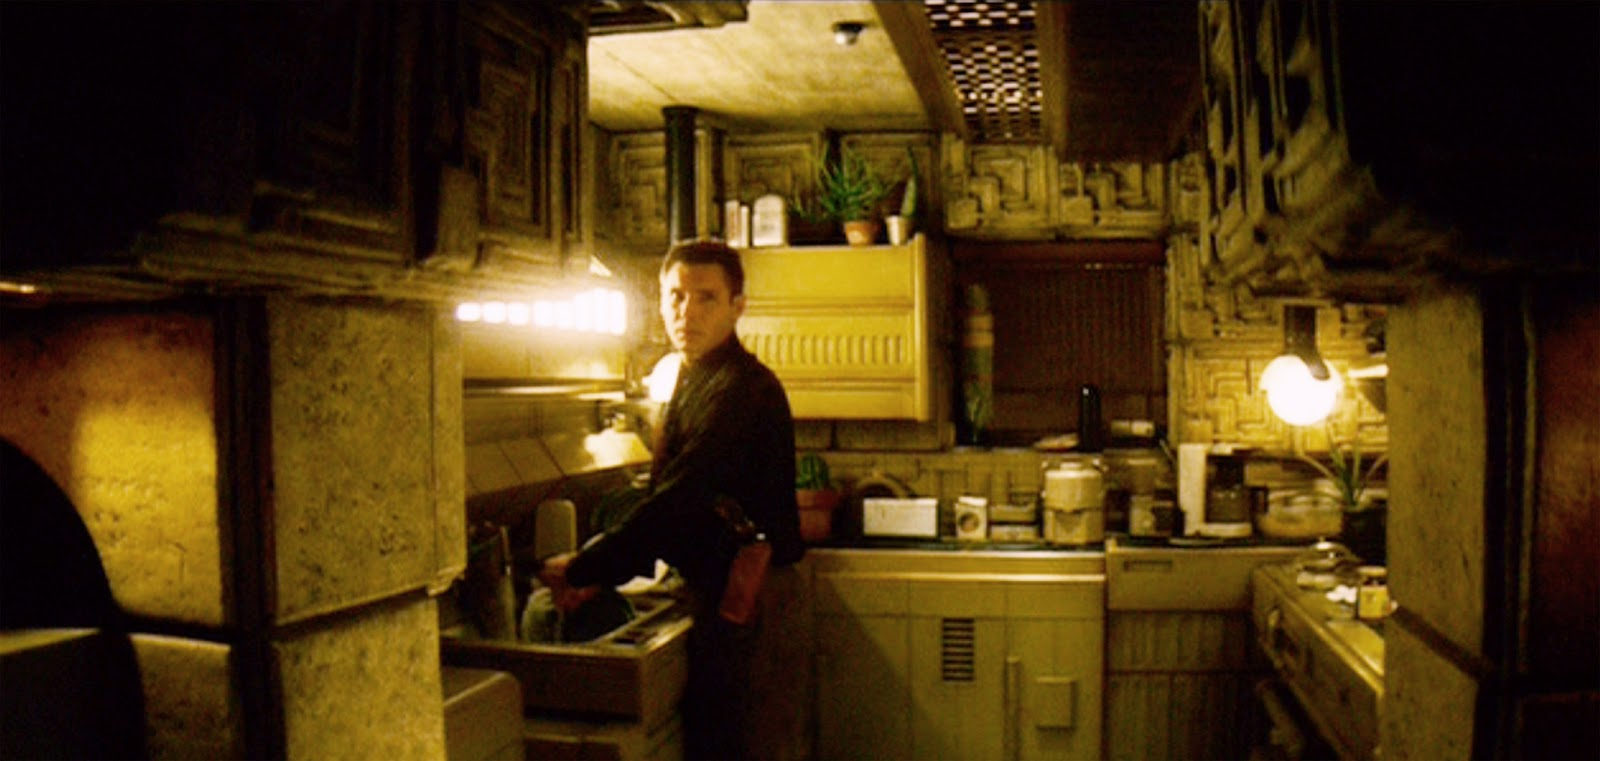 I M Still Struggling To Make Sense Of Some The Things Think See In Deckard S Apartment Specifically